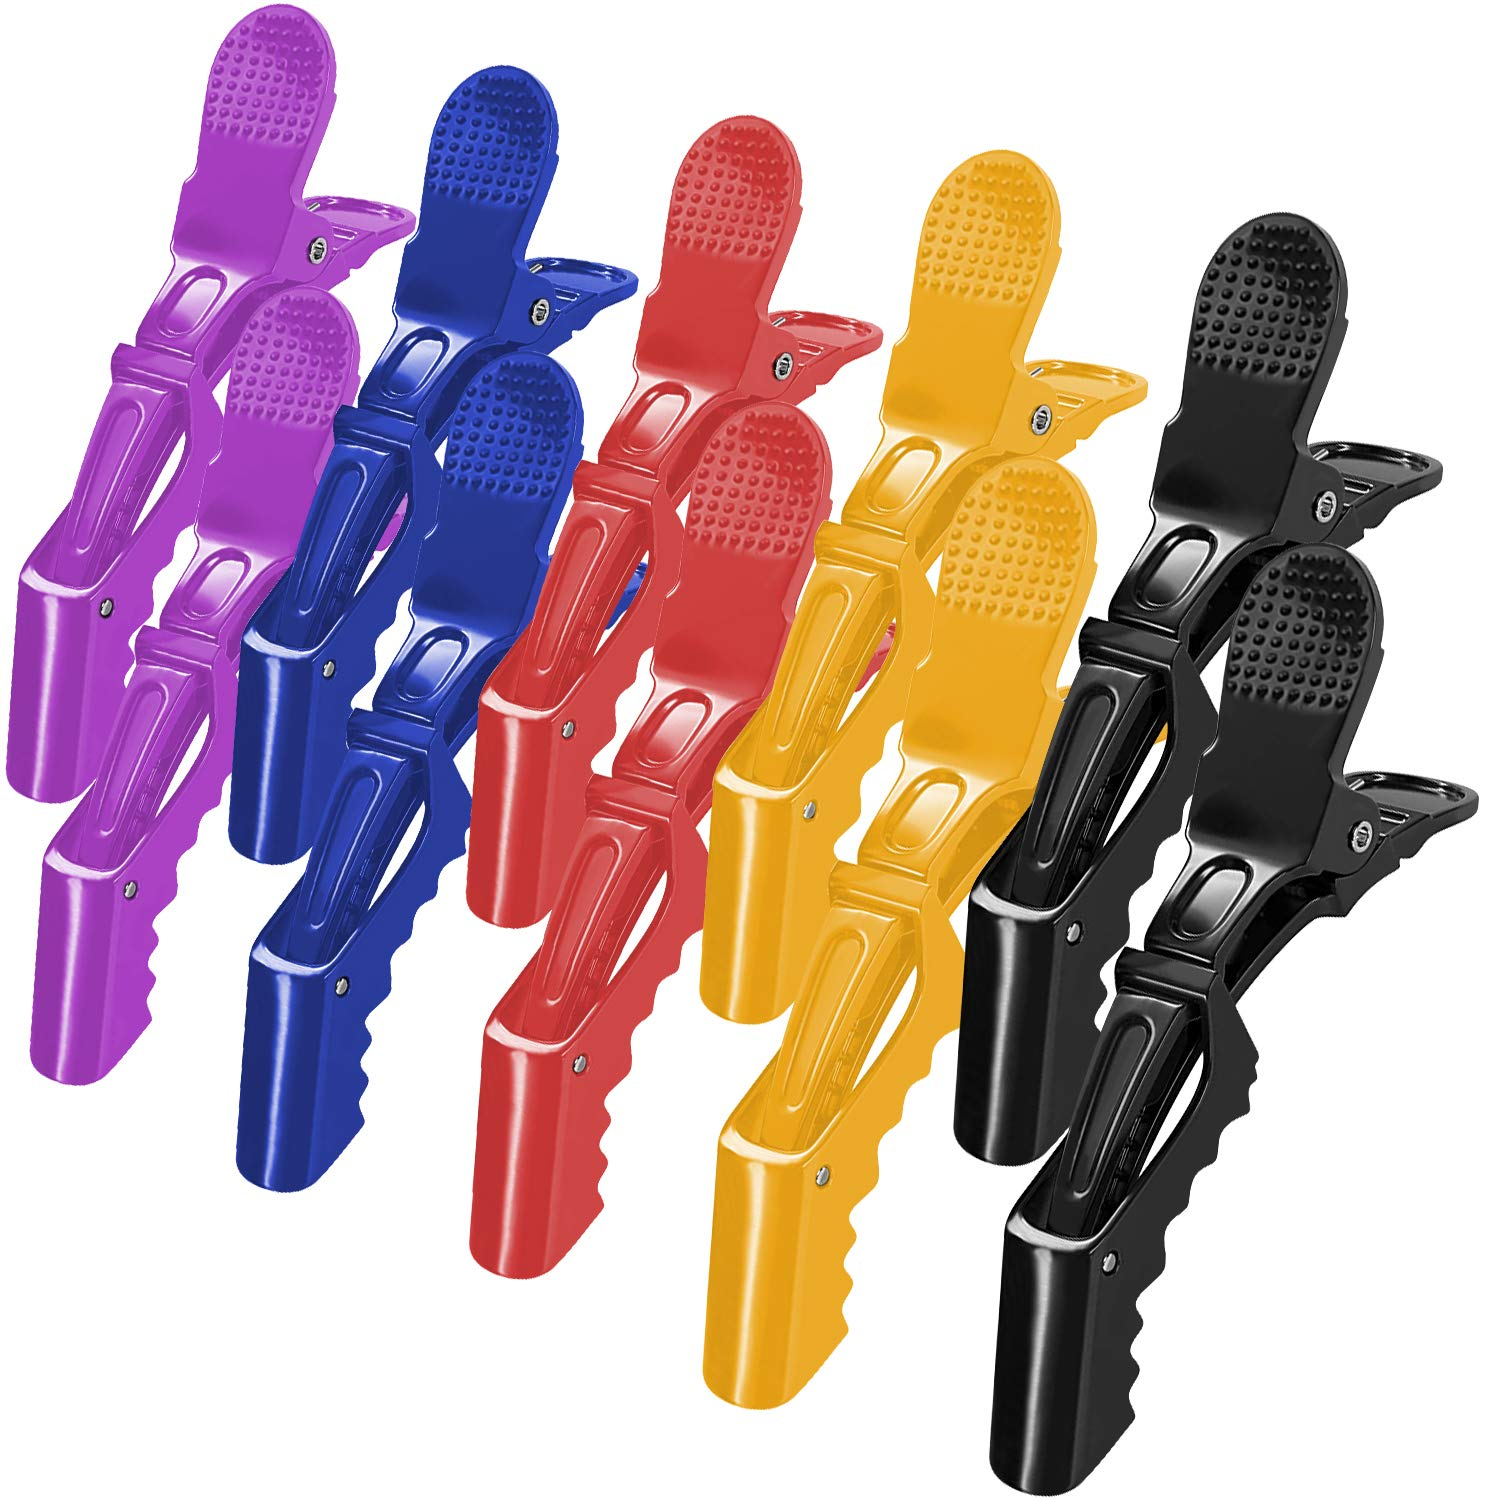 Hair Clips for Styling Sectioning OFFicial site Alligator Clip Animer and price revision Non with